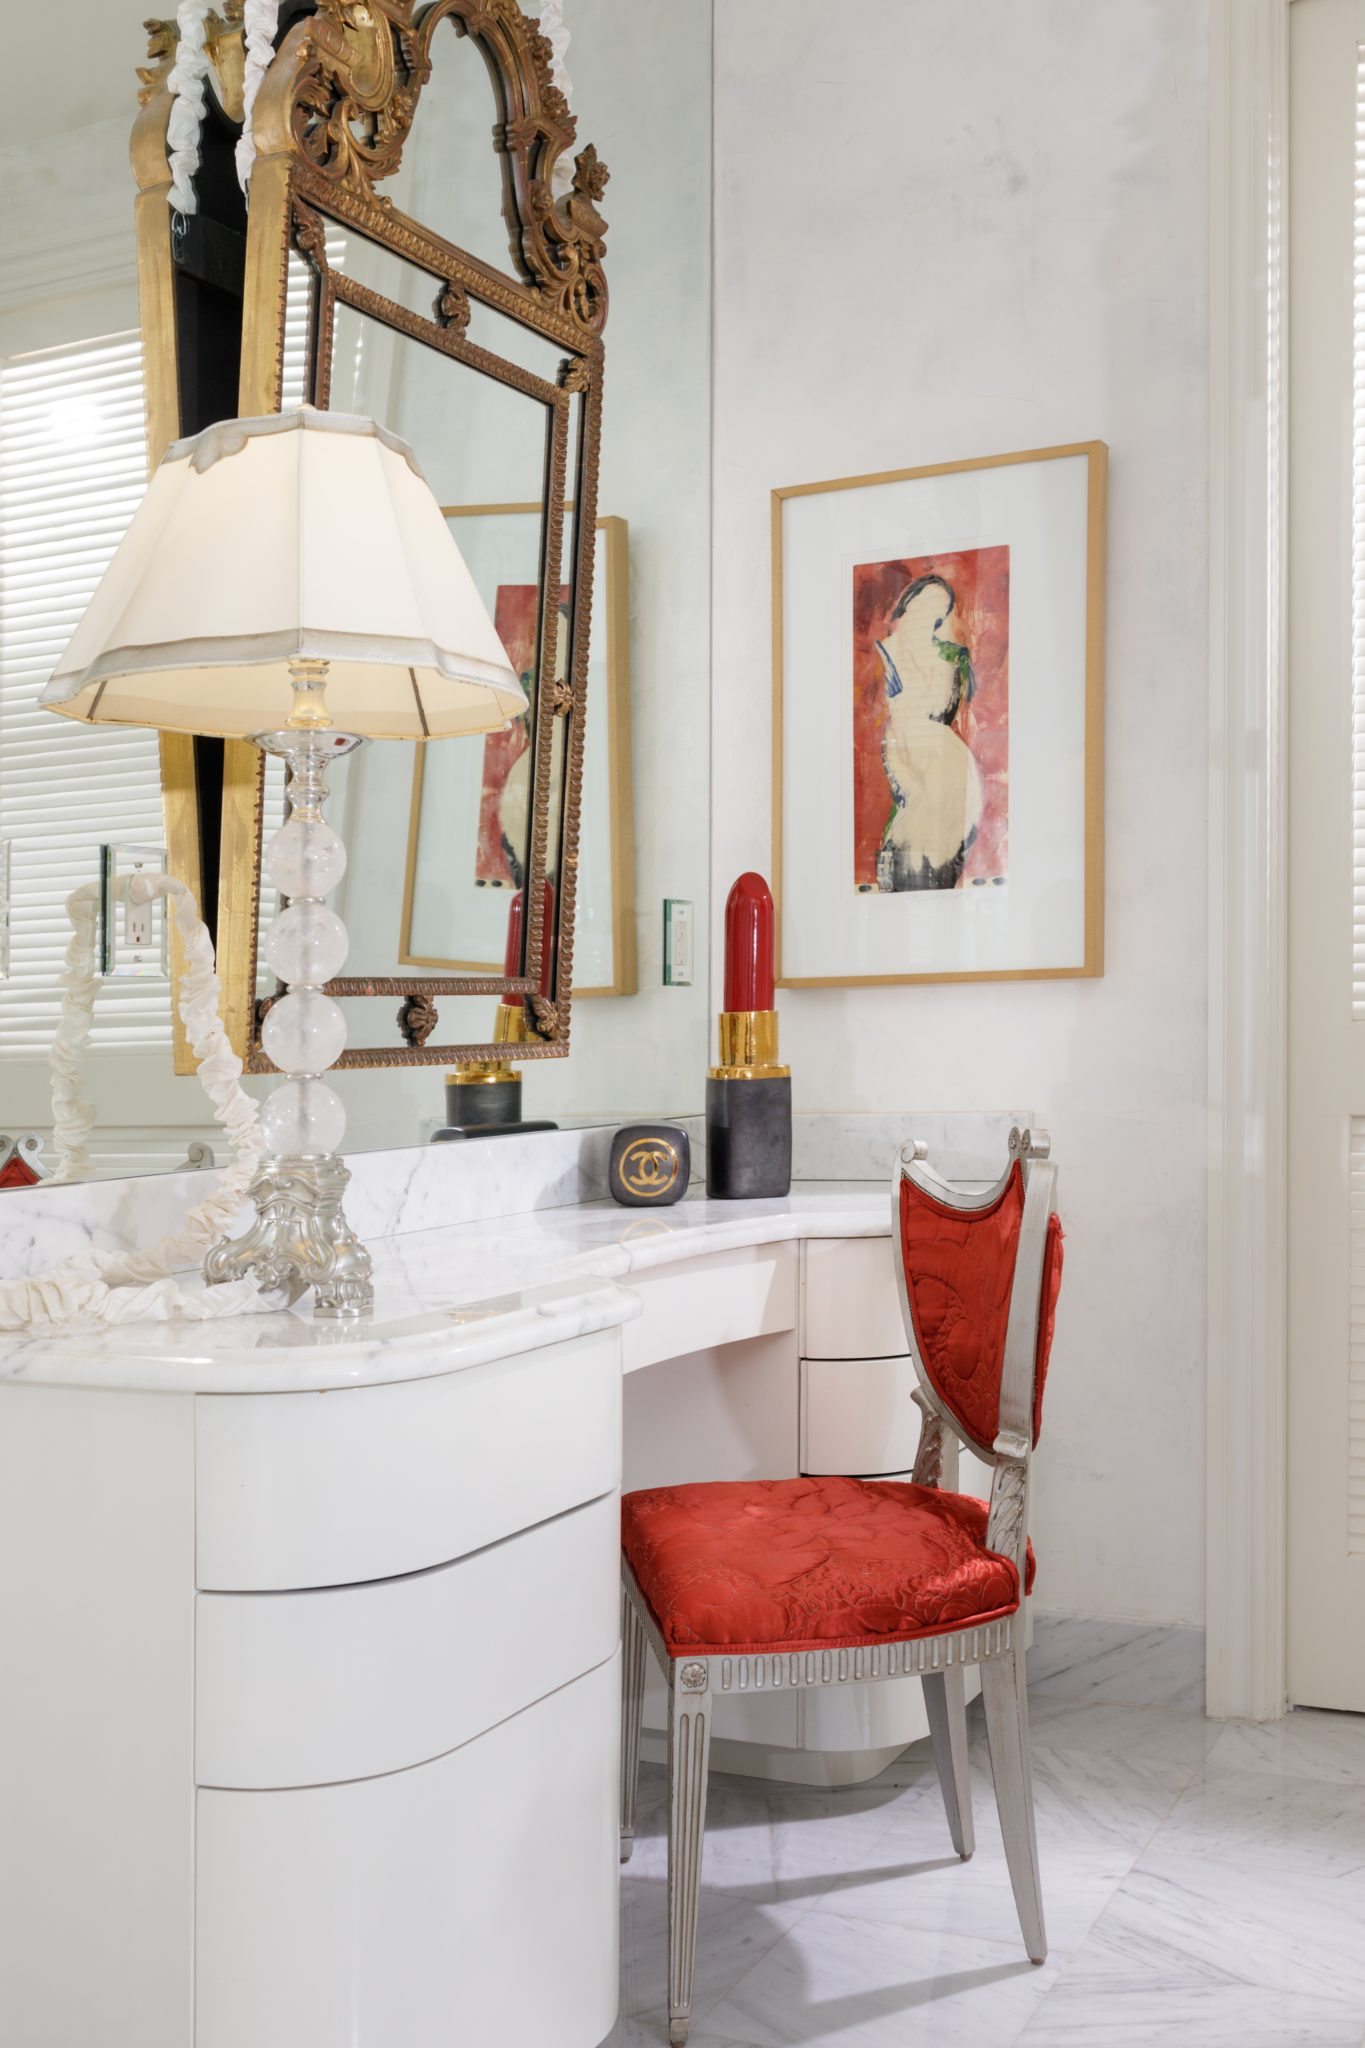 Dressing table in master bath with a striking touch of red by Goddard Design Group